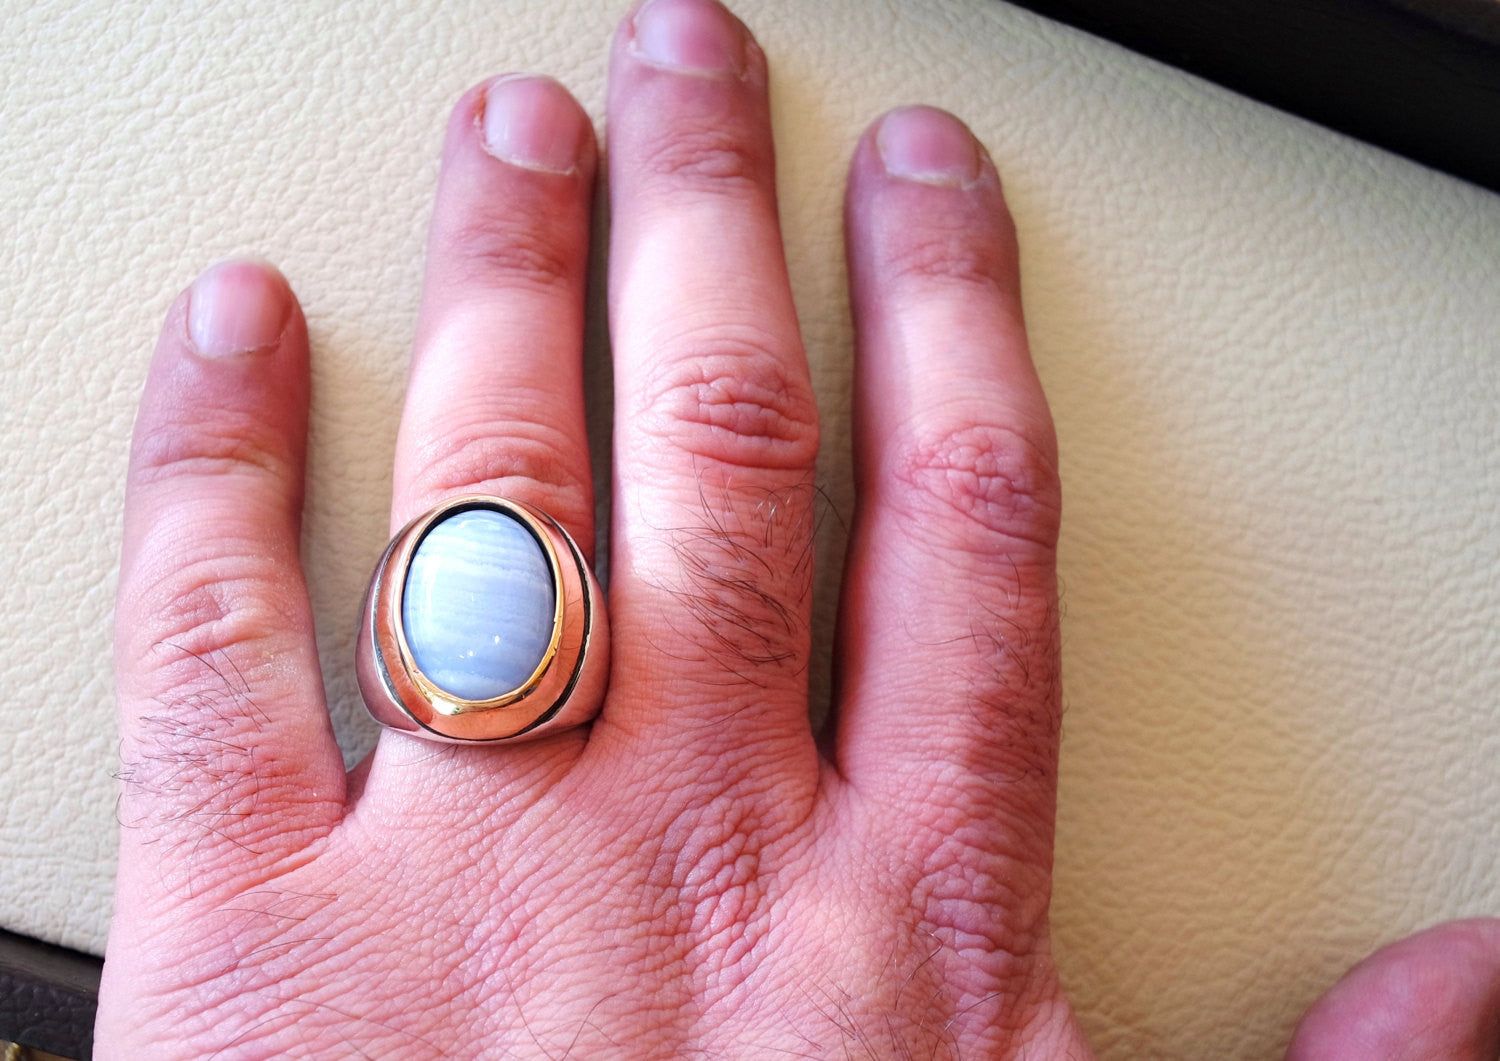 blue lace agate natural stone silver 925 huge men ring arabic turkish ottoman antique style man jewelry oval cabochon in bronze frame